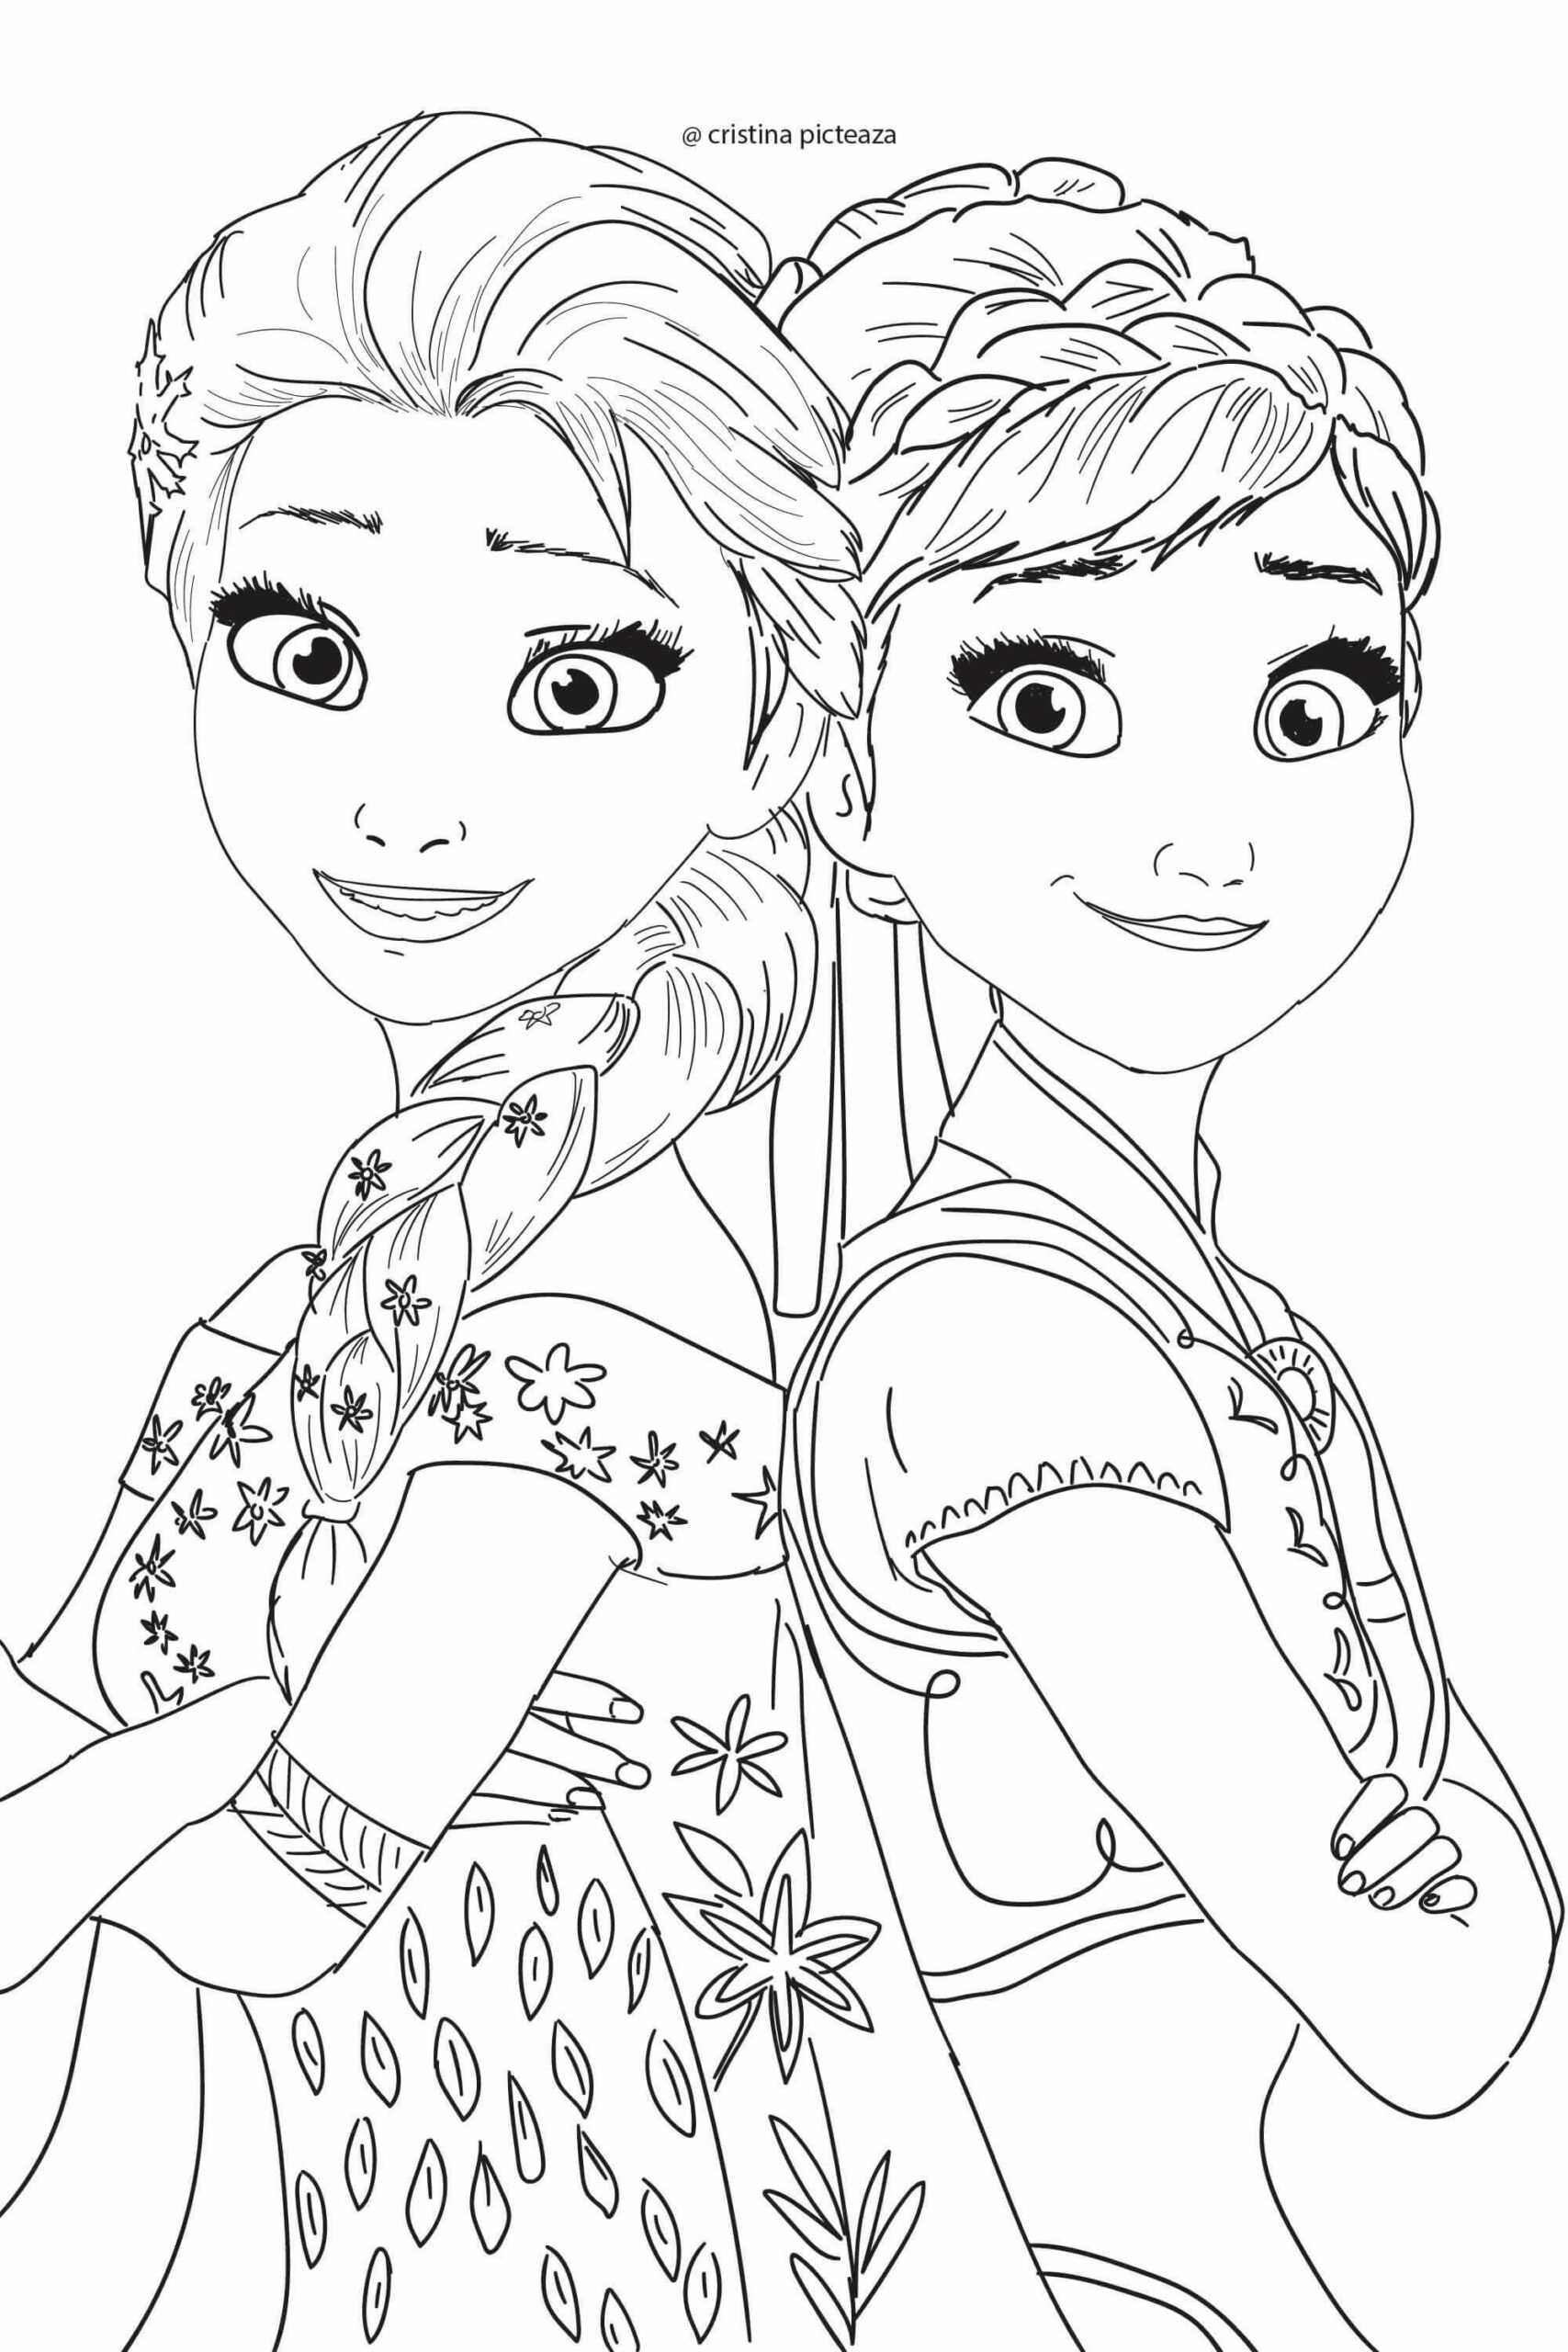 free printable frozen coloring pages frozen 2 coloring pages for adults sheapeterson pages free coloring printable frozen